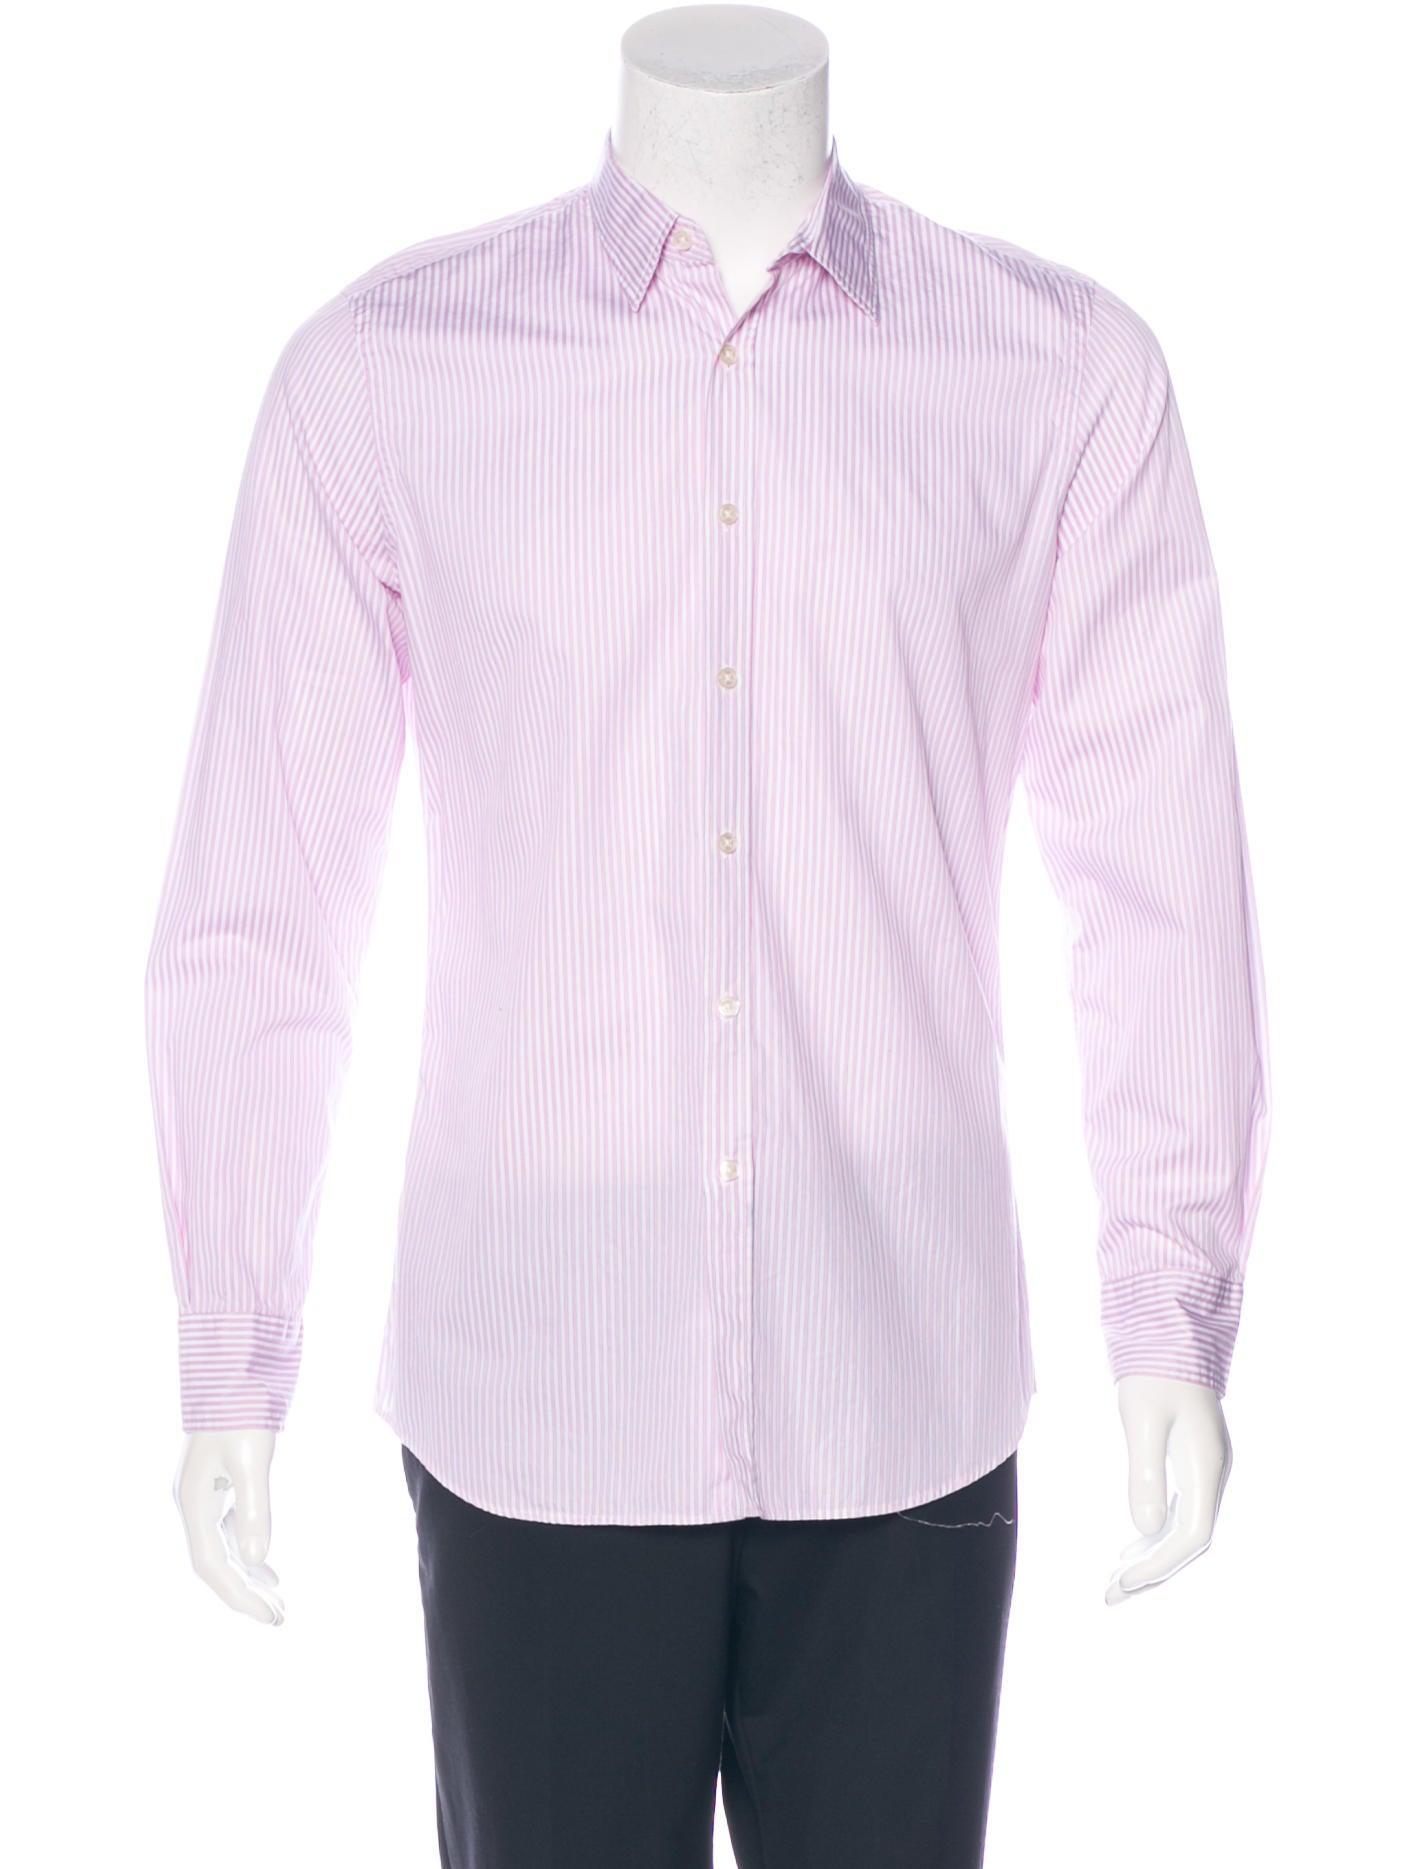 Paul smith tailored fit striped shirt clothing for Tailored fit dress shirts